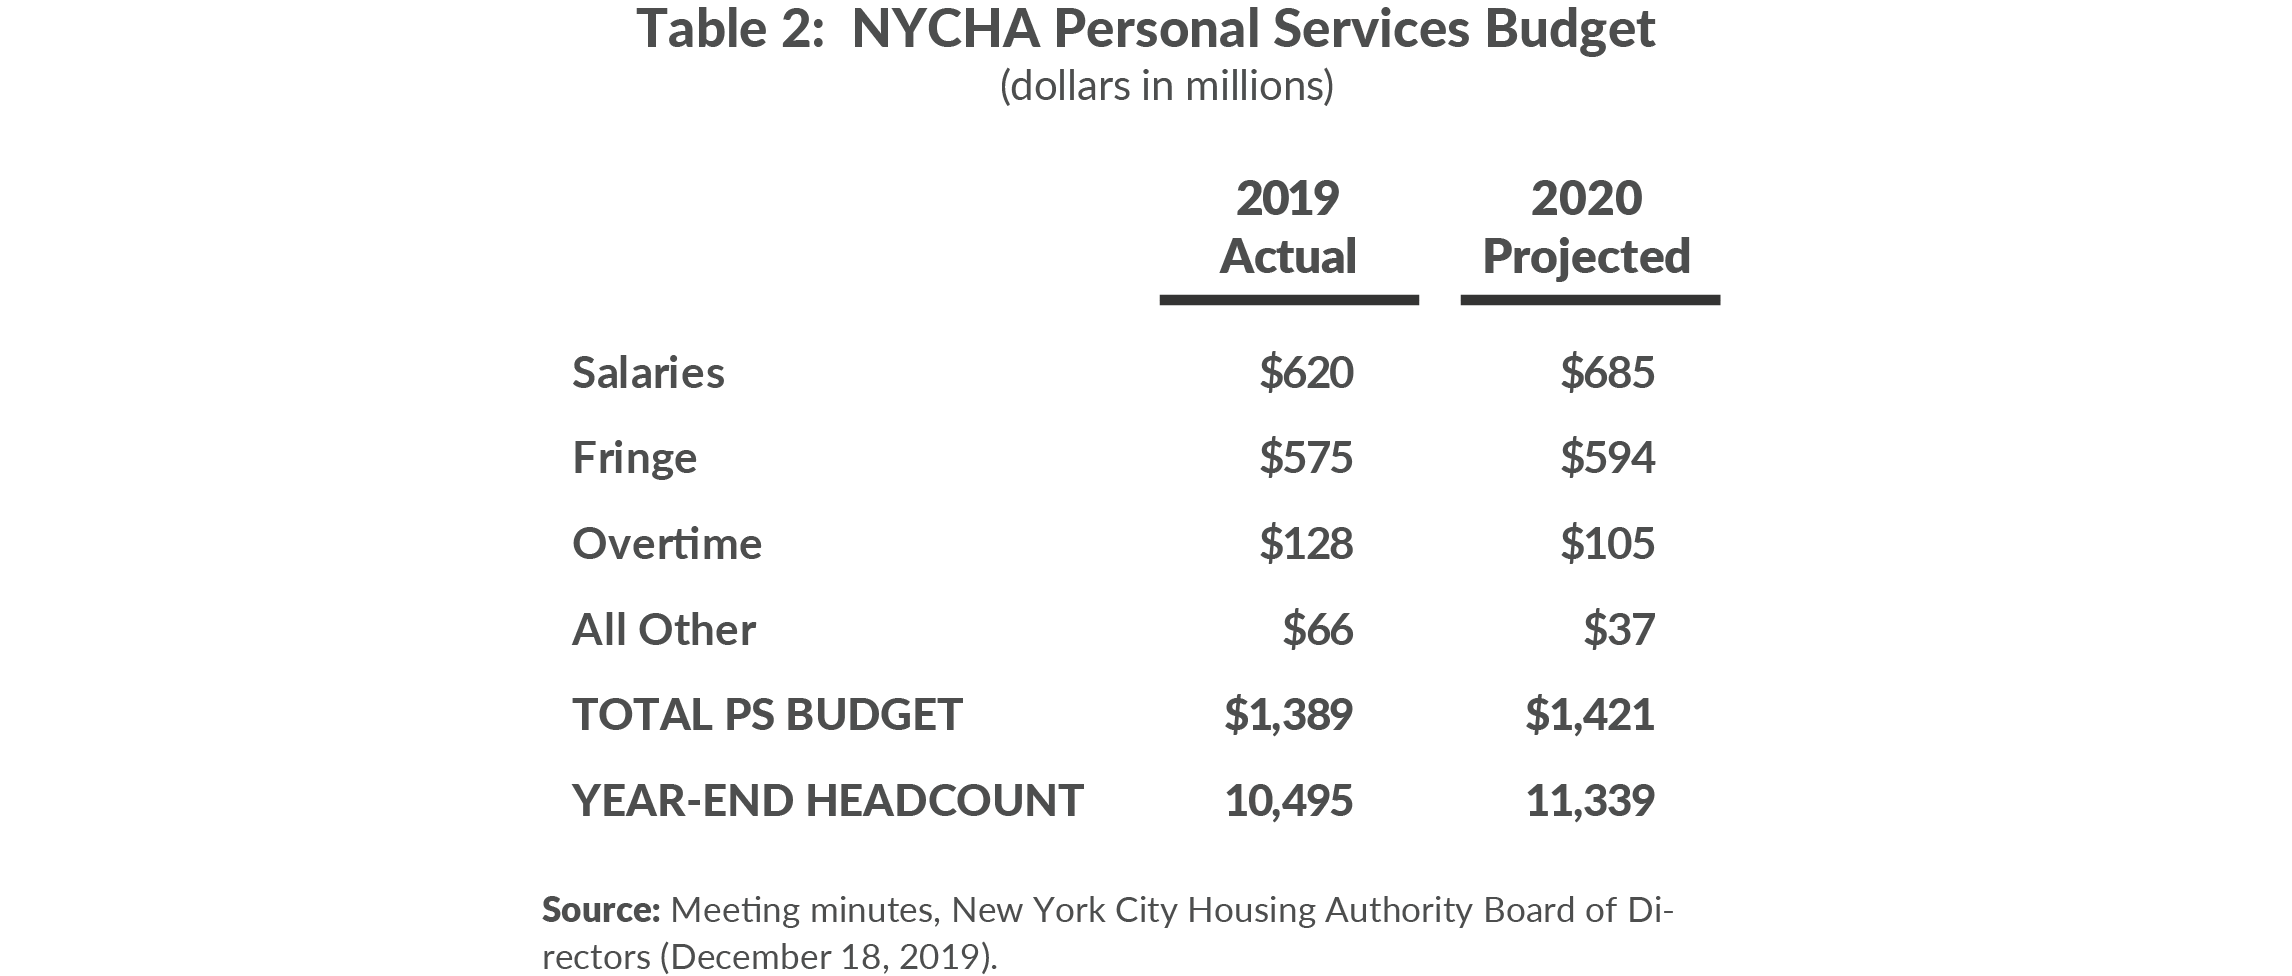 Table 2. NYCHA Personal Services Budget (dollars in millions)